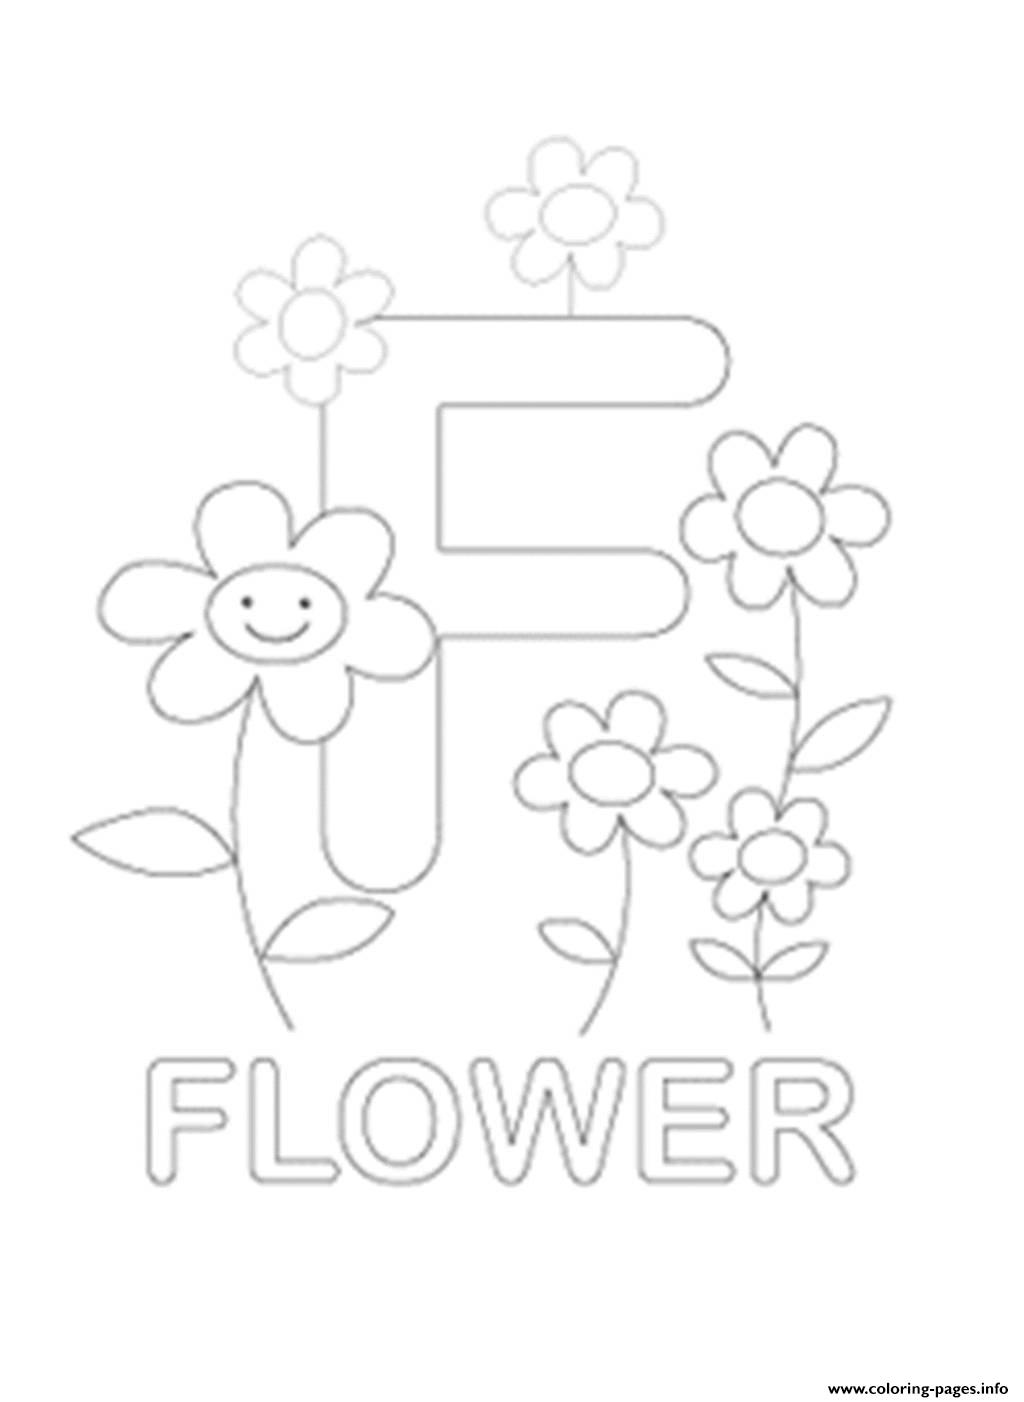 free coloring pages with letters - f for flower free alphabet s599e coloring pages printable